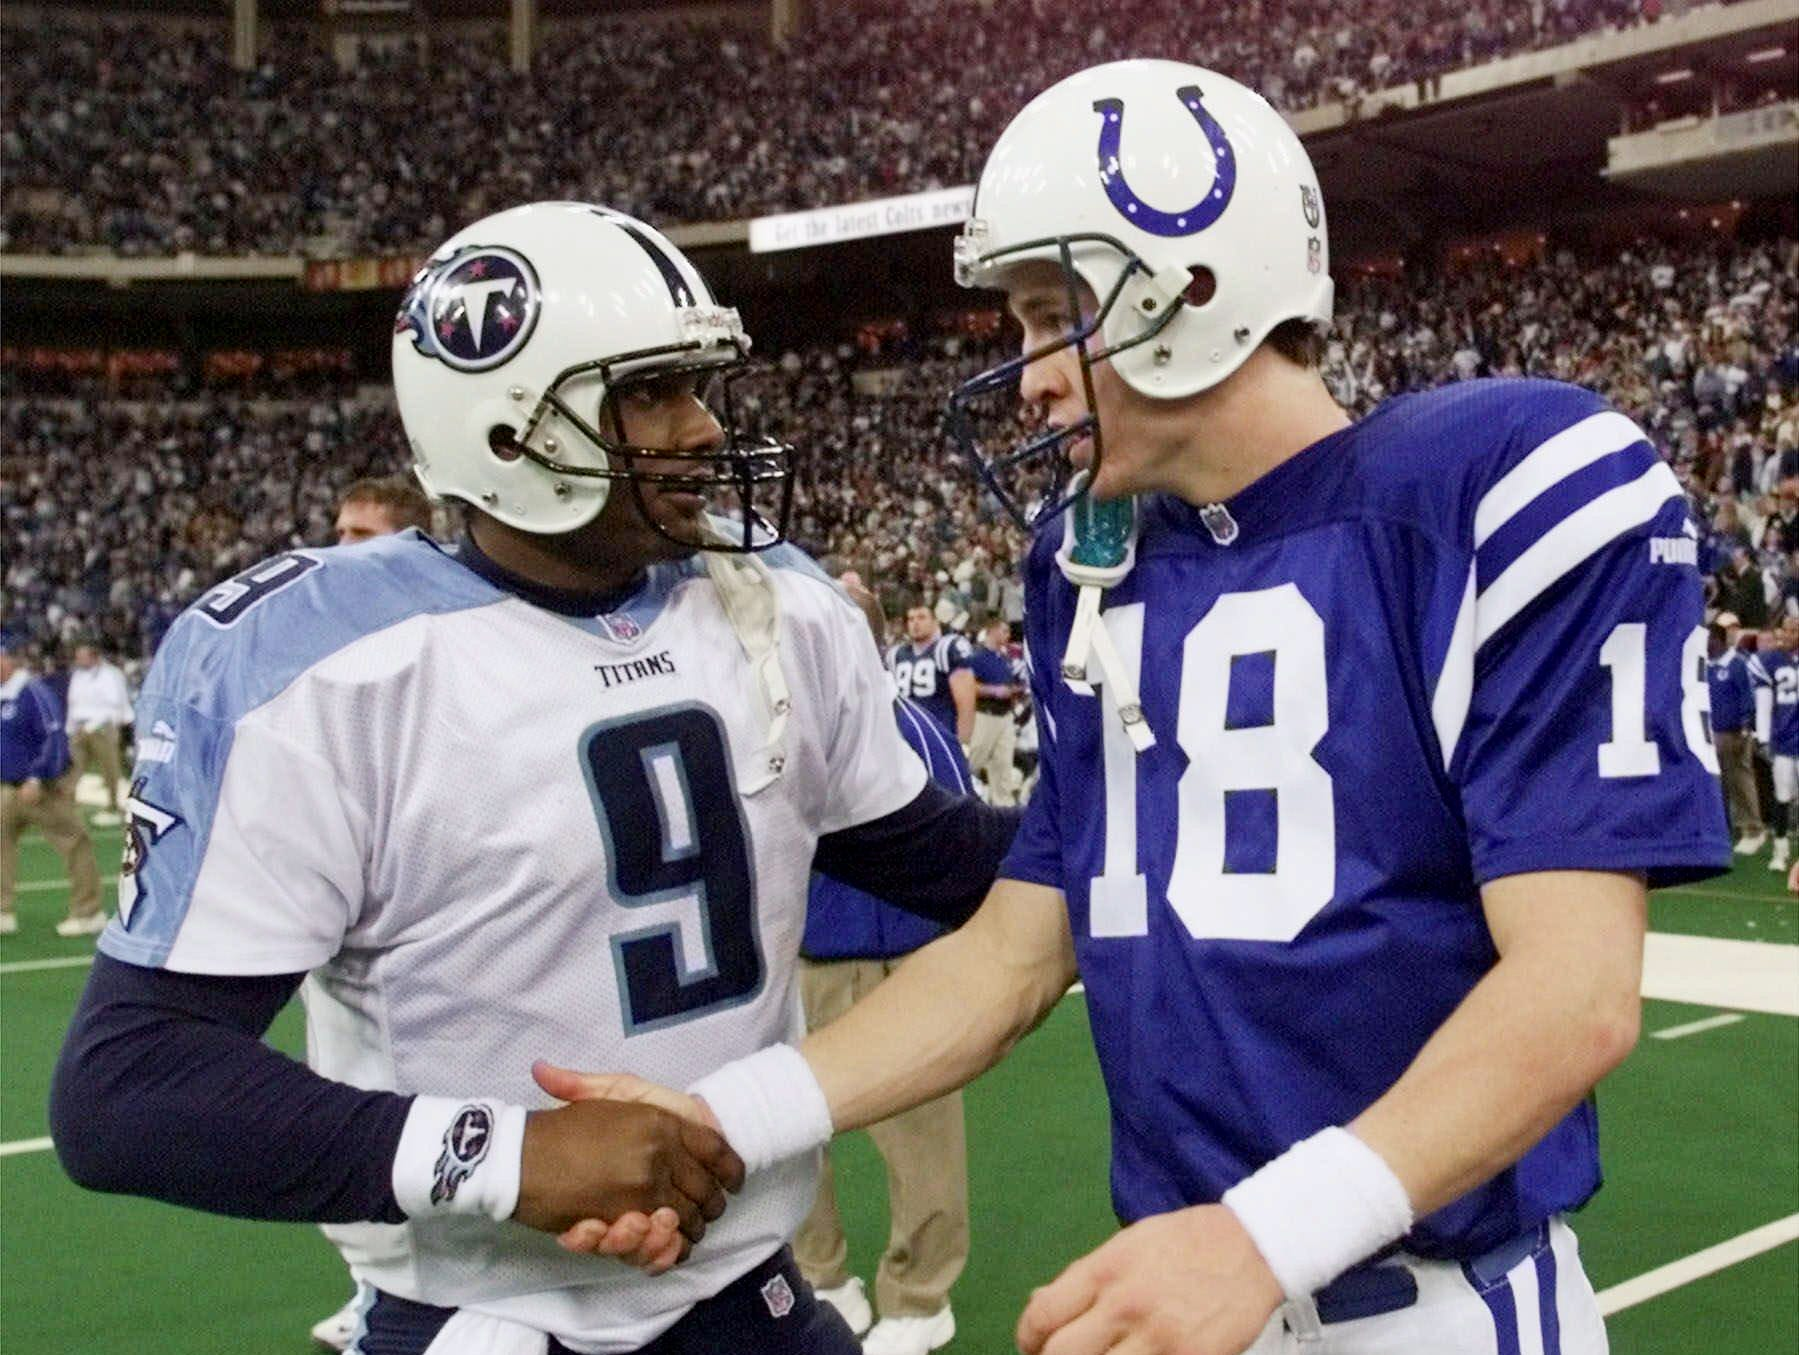 Indianapolis Colts quarterback Peyton Manning, right, congratulates Tennessee Titans quarterback Steve McNair after the Titans won their AFC divisional playoff game 19-16 in Indianapolis Jan. 16, 2000.